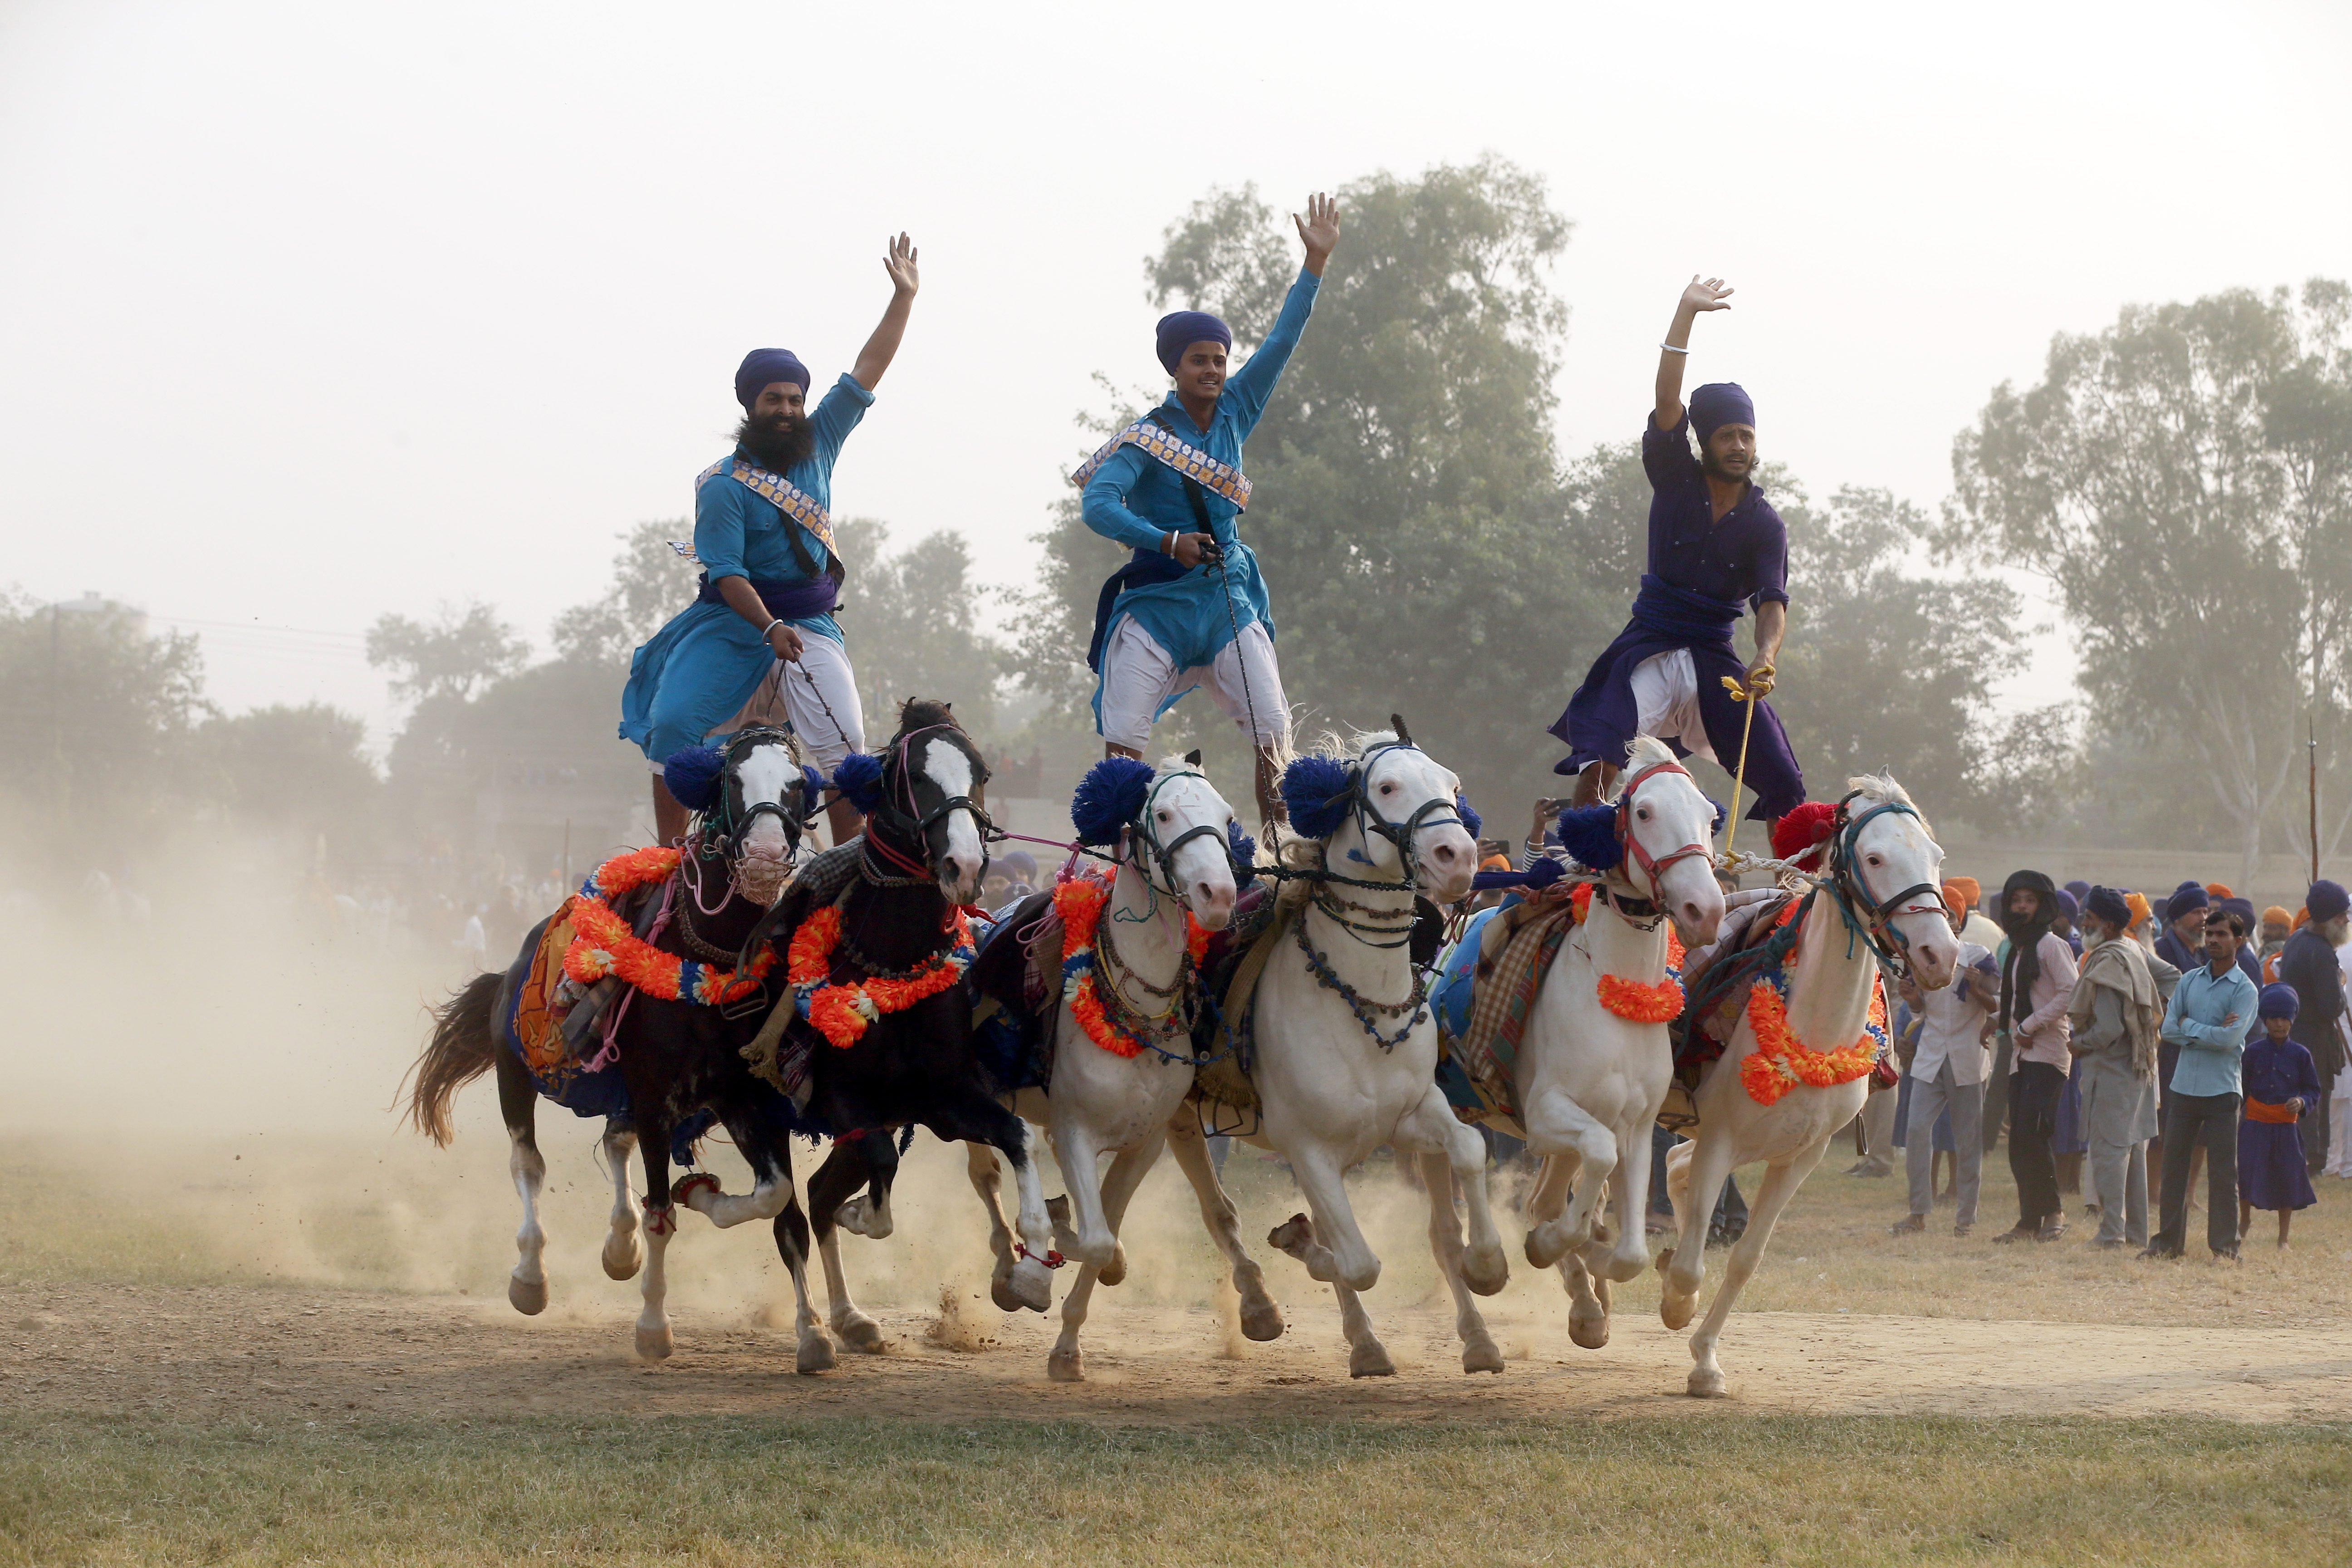 Fateh Divas or 'Victory Day' celebrations in Amritsar, India - 08 Nov 2018